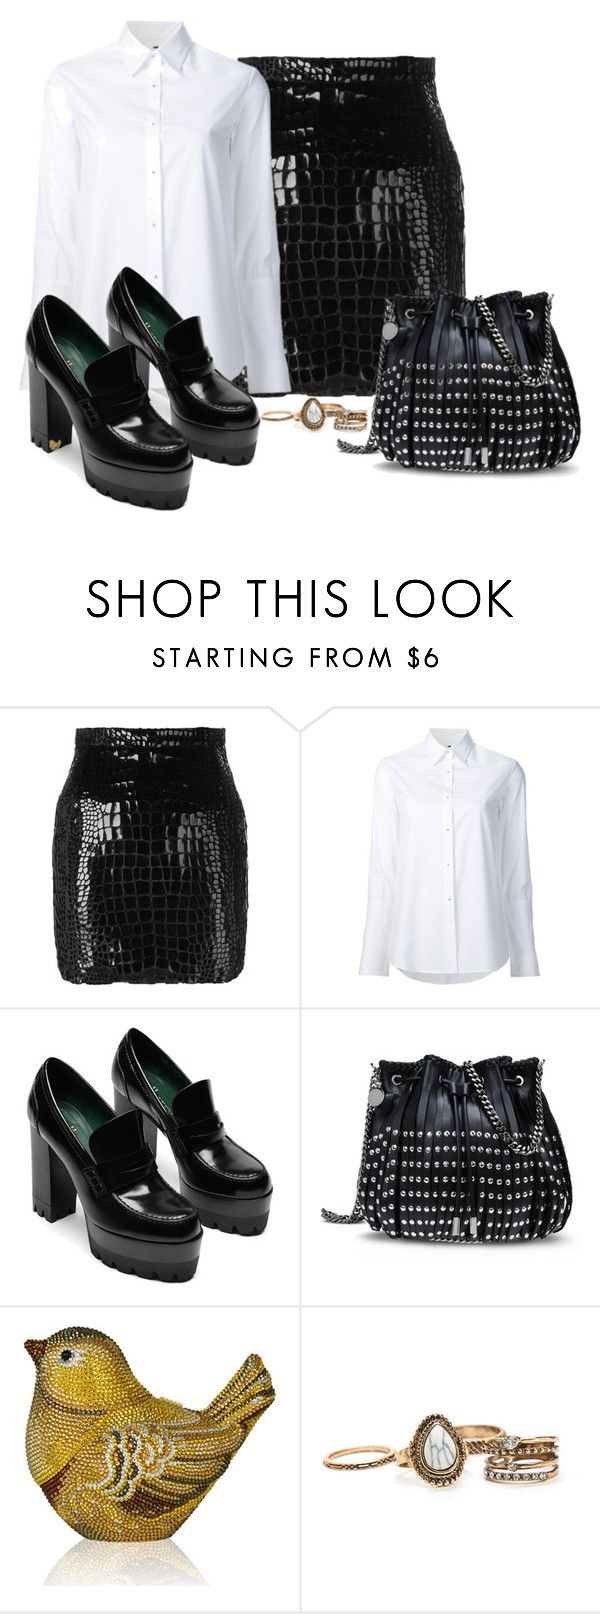 """""""Untitled #1871"""" by cardigurl ❤ liked on Polyvore featuring Yves Saint Laurent, Misha Nonoo, STELLA McCARTNEY and Judith Leiber"""